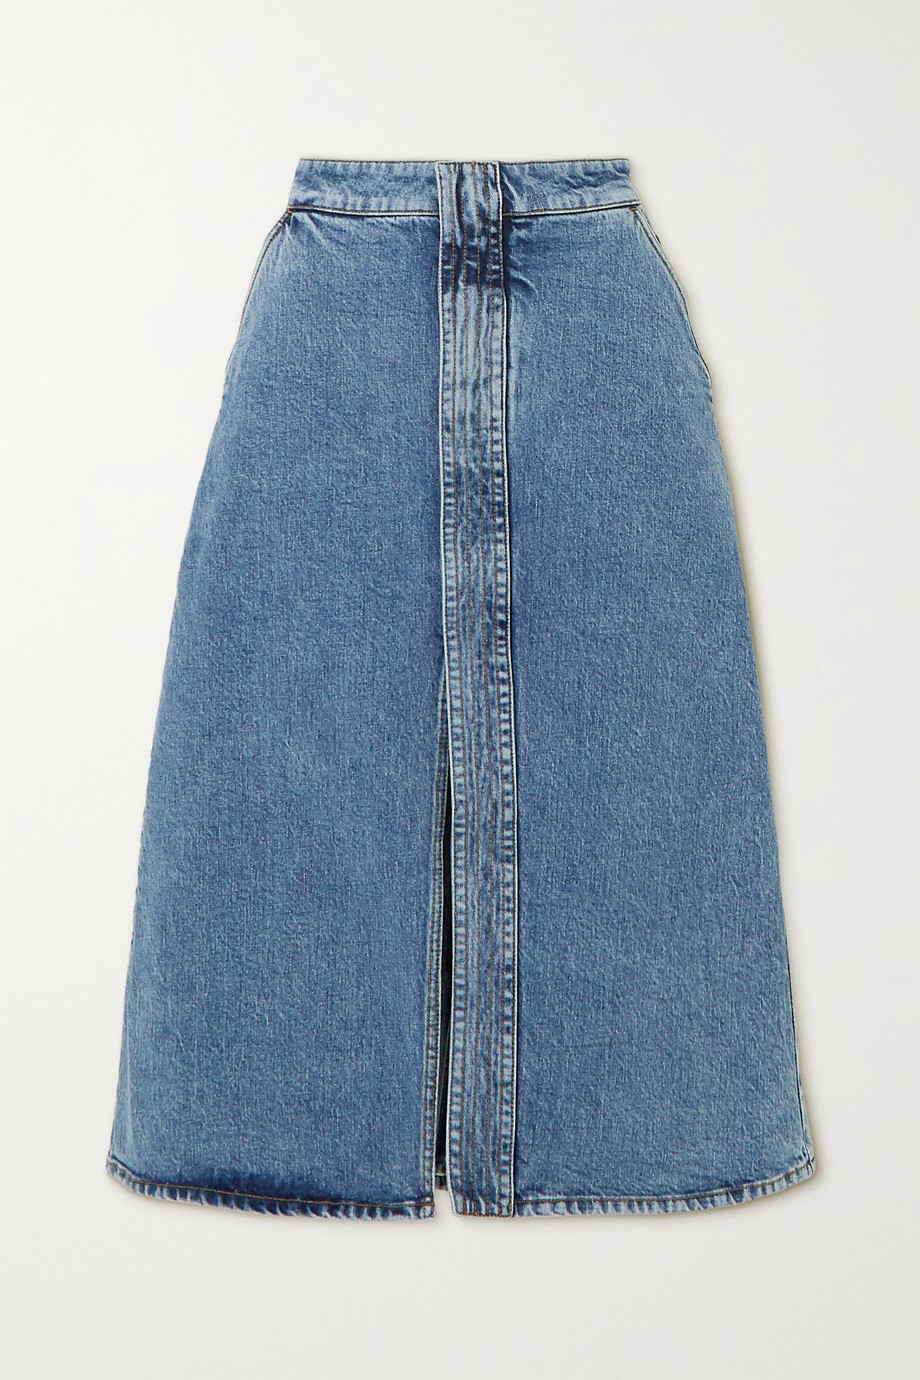 Stella McCartney + NET SUSTAIN denim midi skirt